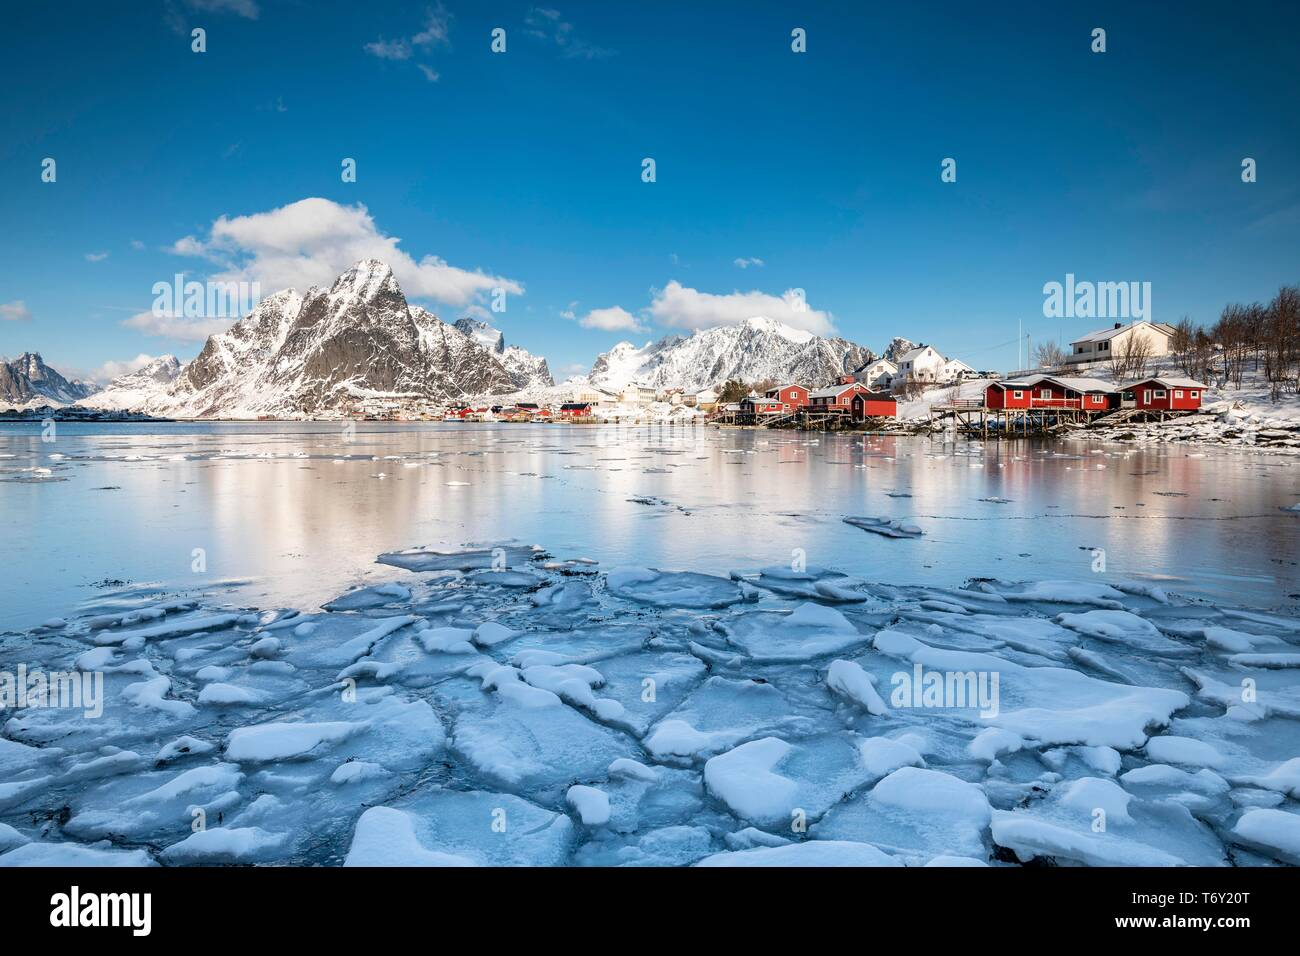 Cabins by the fjord with ice floes in the foreground, fishing village Reine, Olstinden, Moskenesoya, Lofoten, Norway - Stock Image